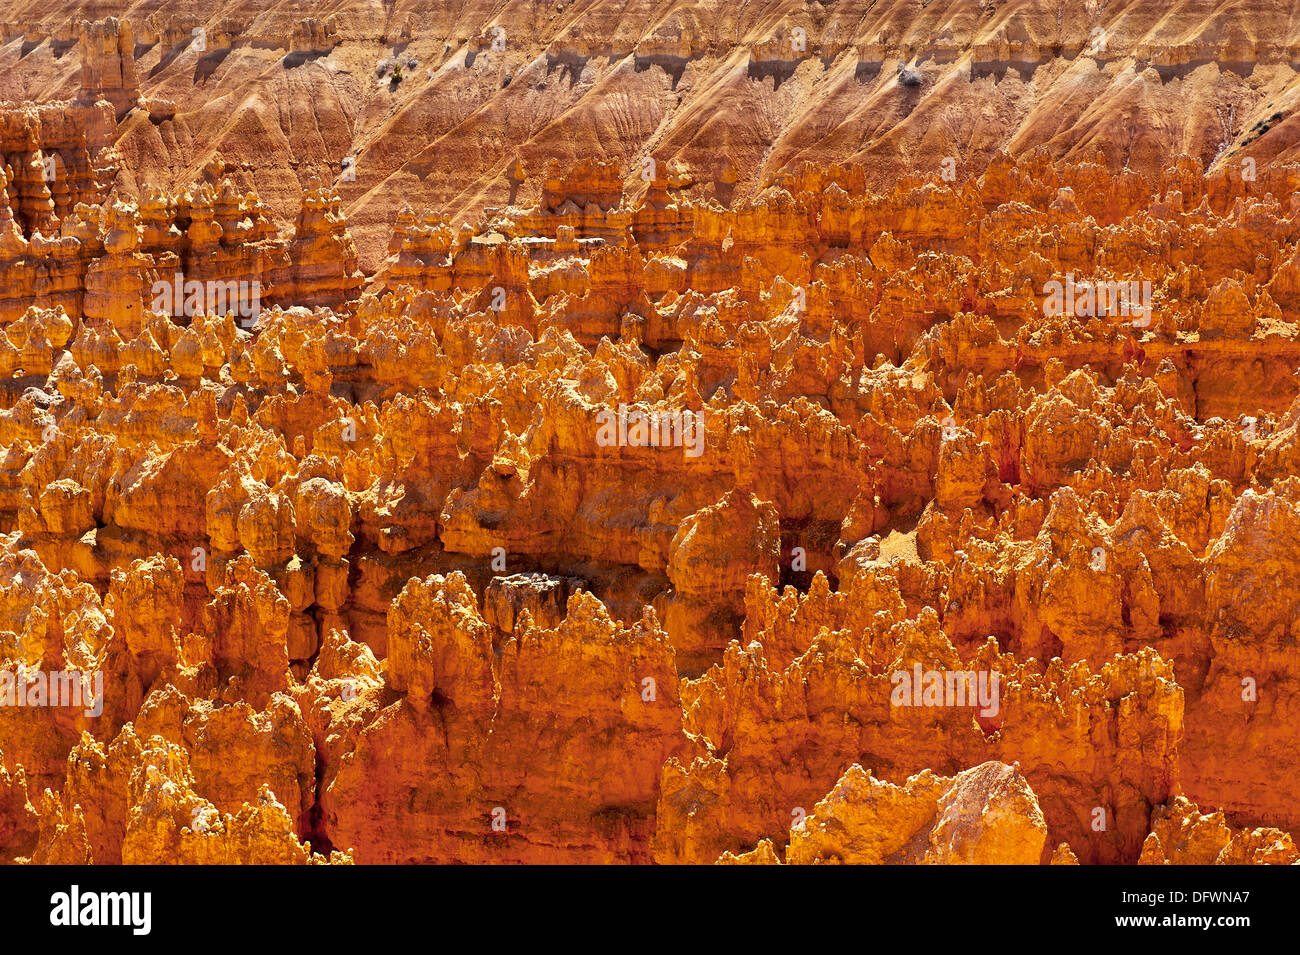 Bryce Canyon National Park Overview - Stock Image